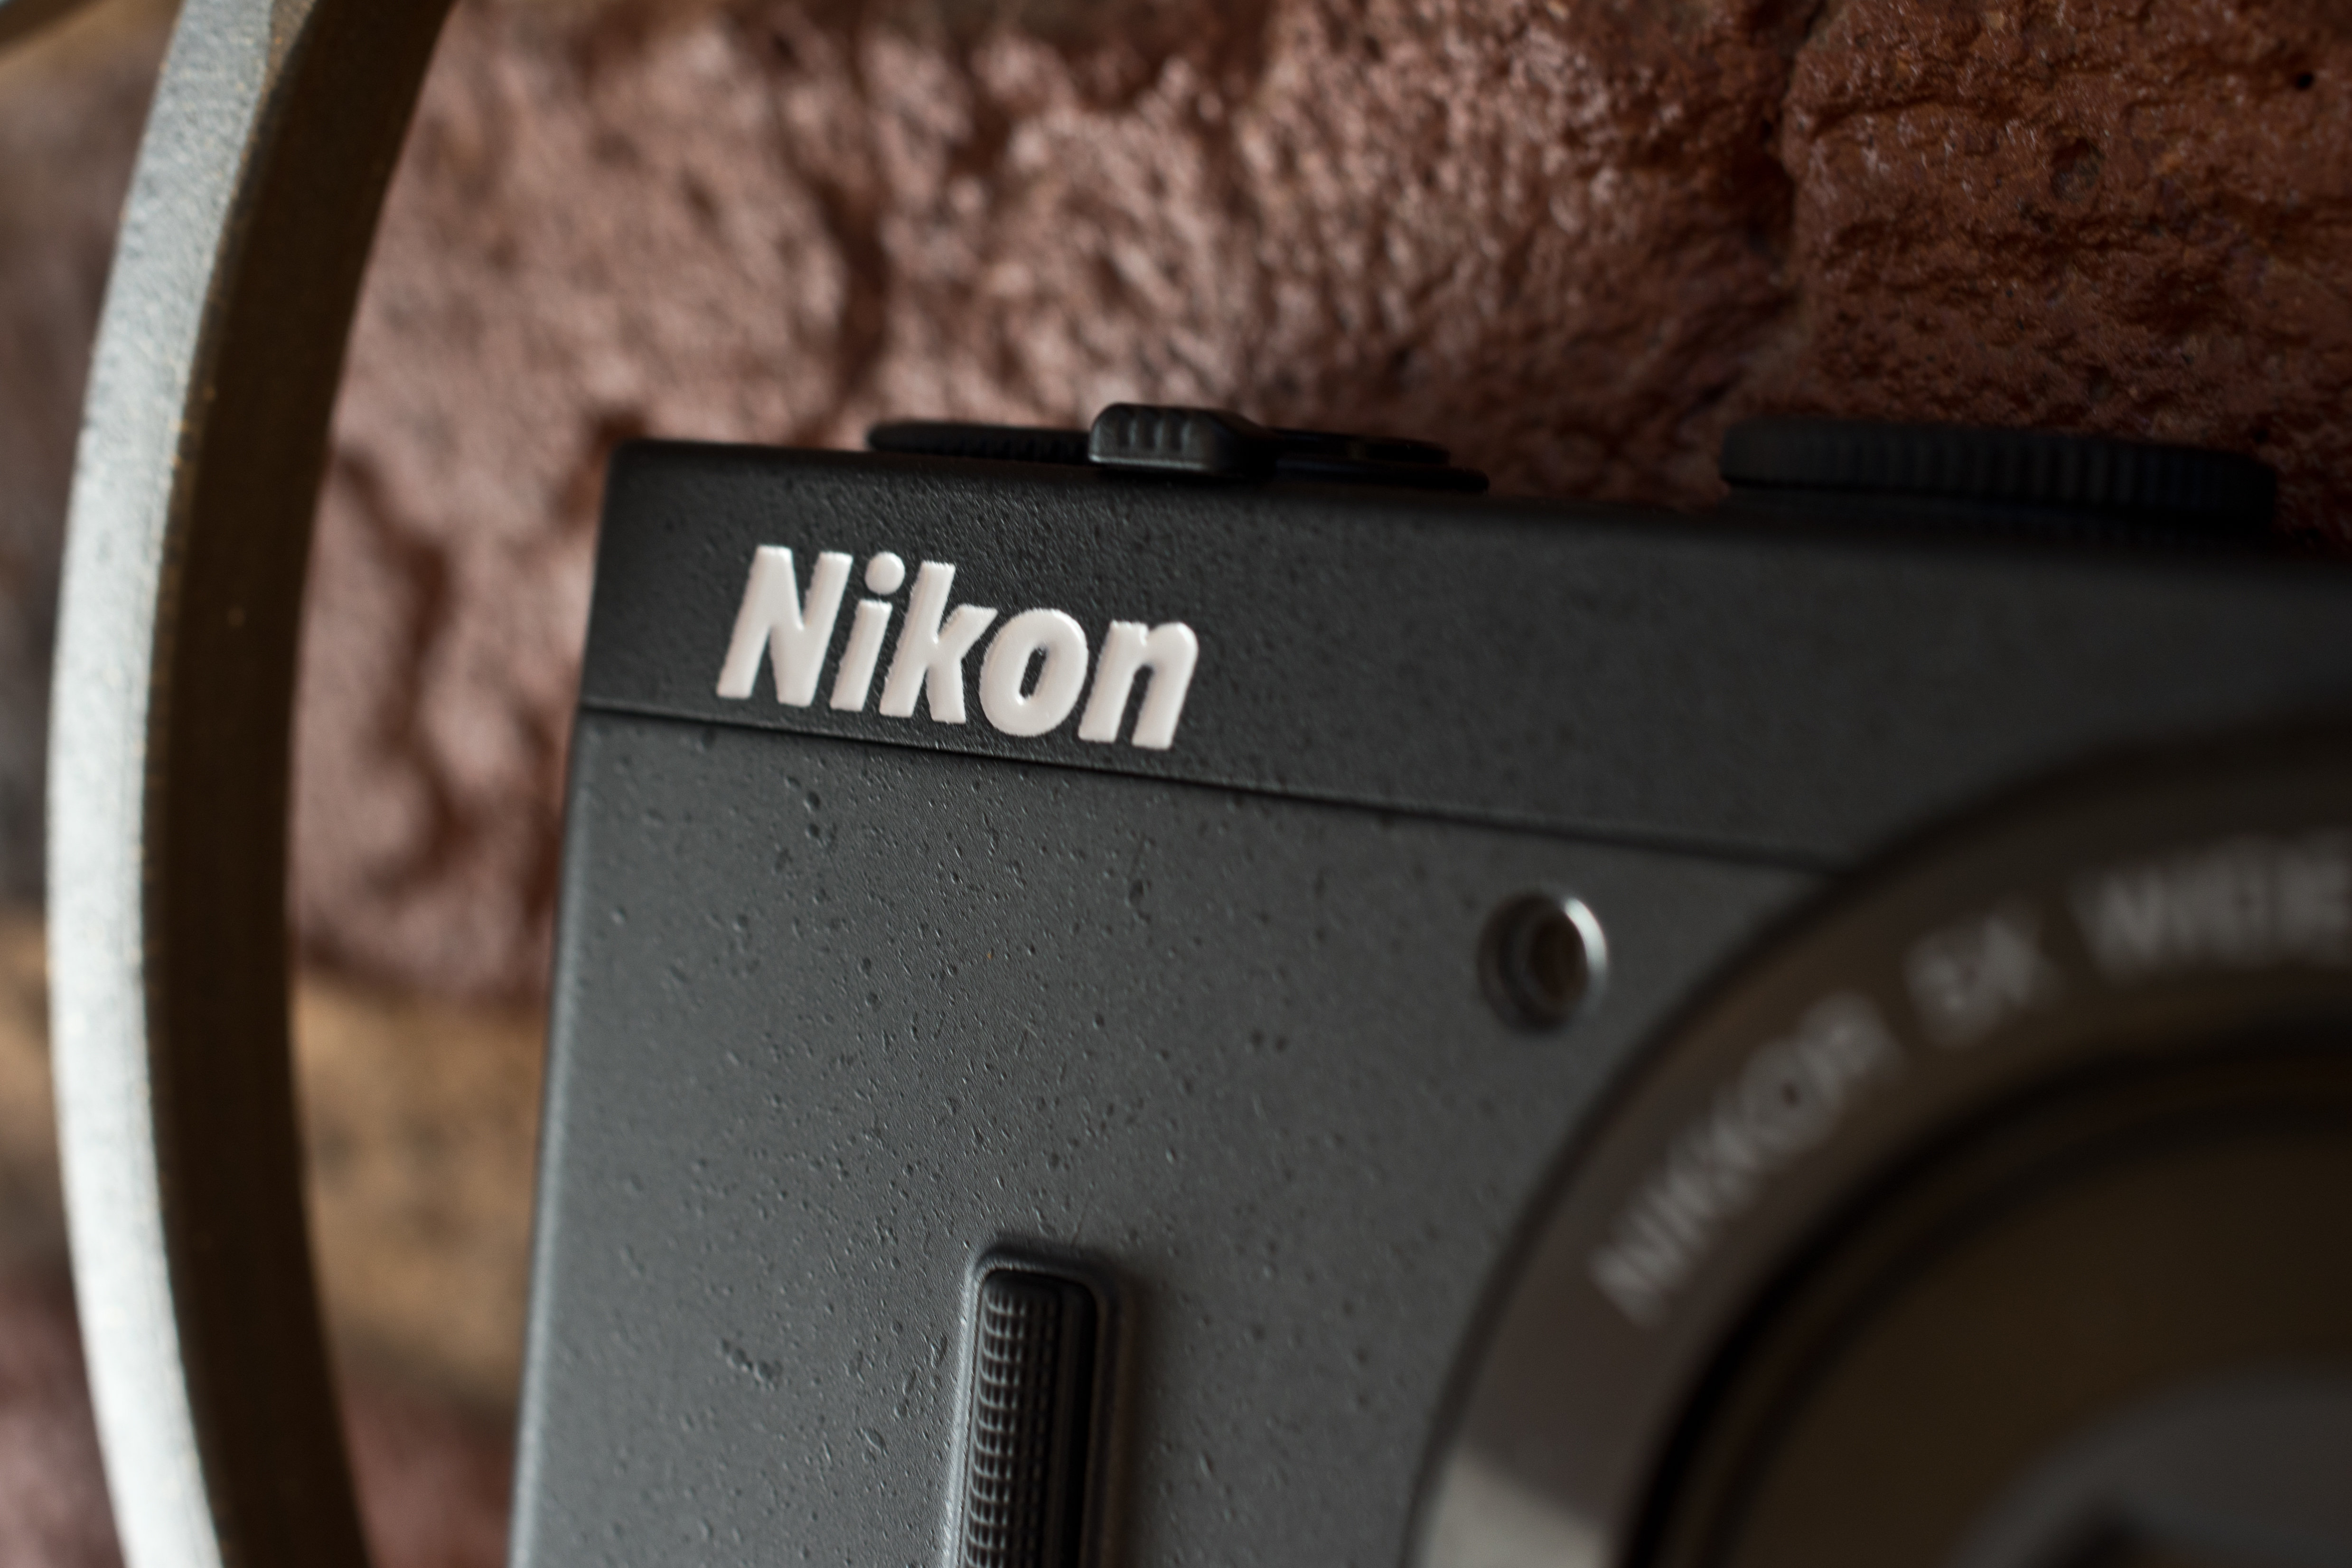 A photograph of the Nikon Coolpix P340's front logo, AF lamp.